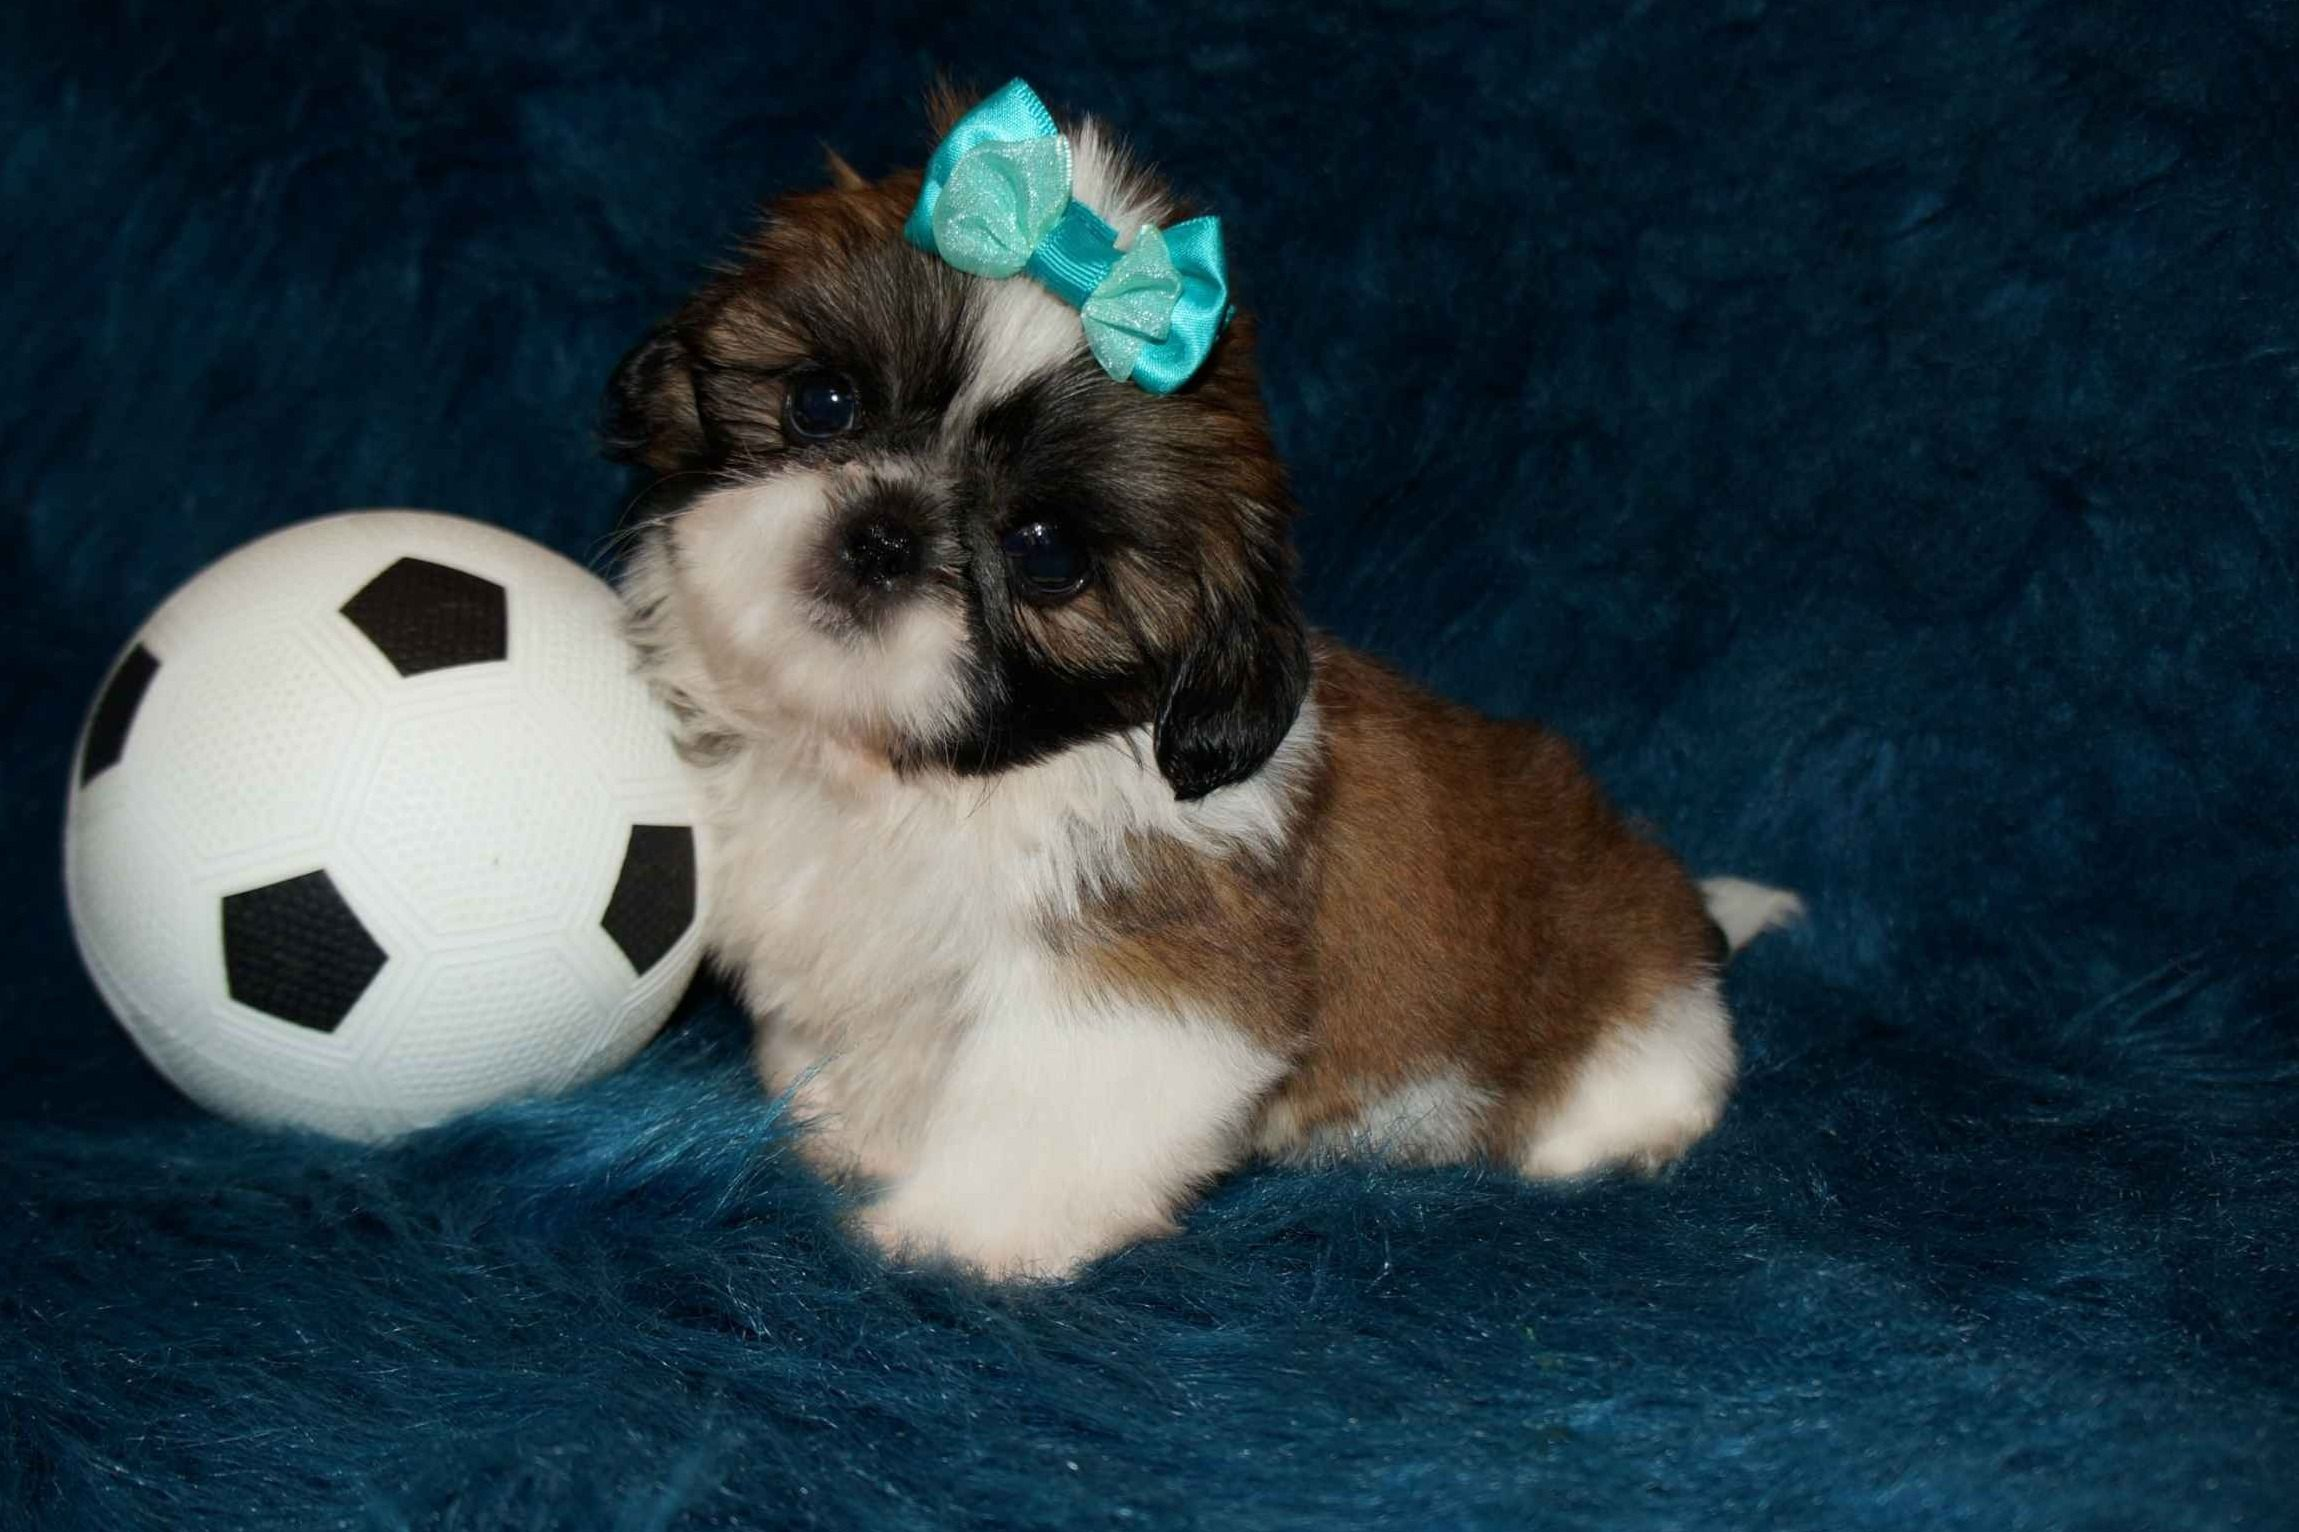 Pandora's Puppies - Shih Tzu Puppies For Sale - Born on 06